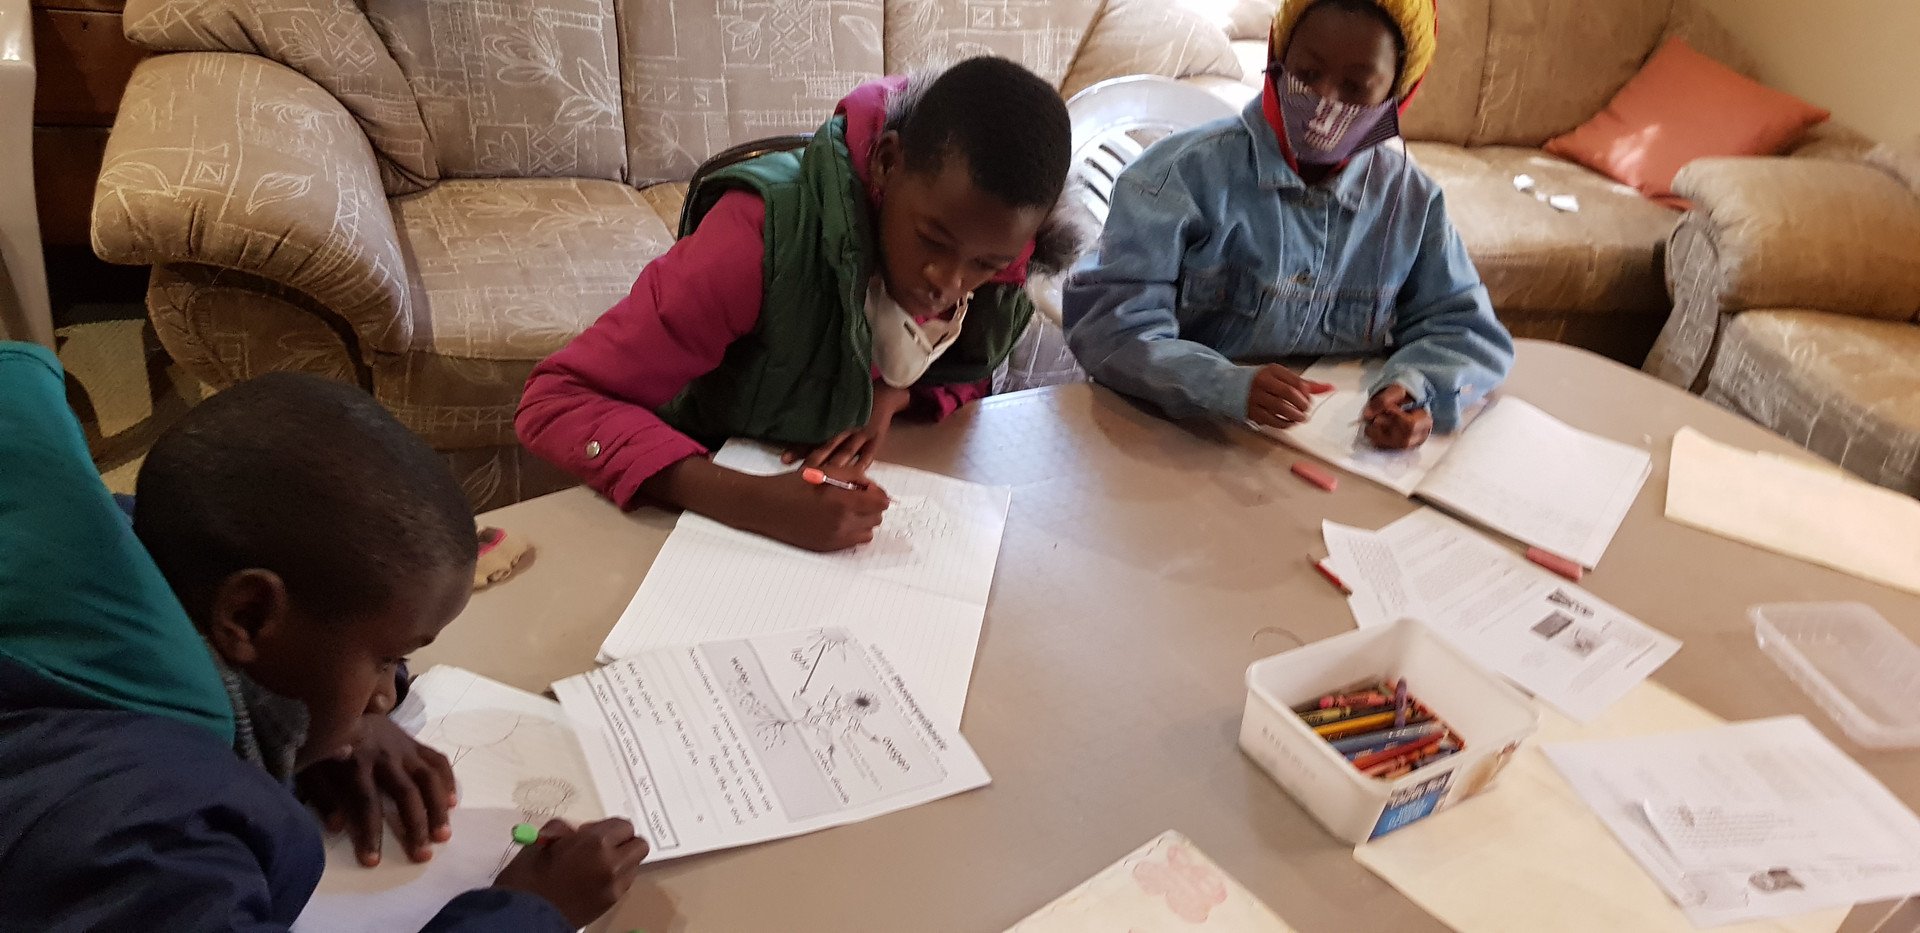 Lessons setup based on the South Africa Curriculum they would be learning in public school